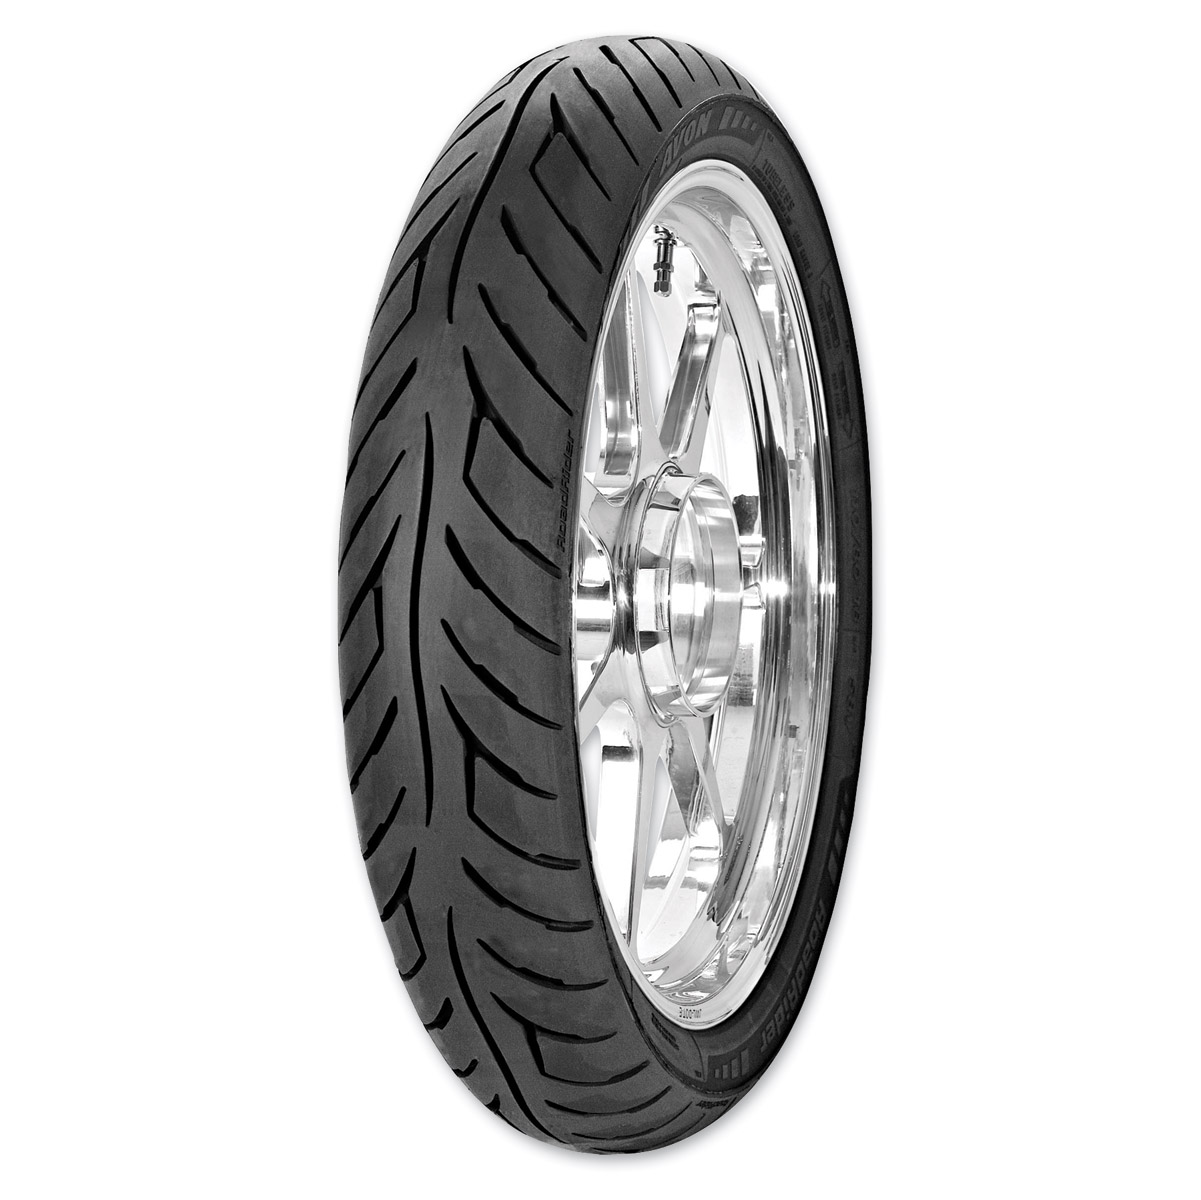 Avon AM26 Roadrider 90/90-21 Front Tire